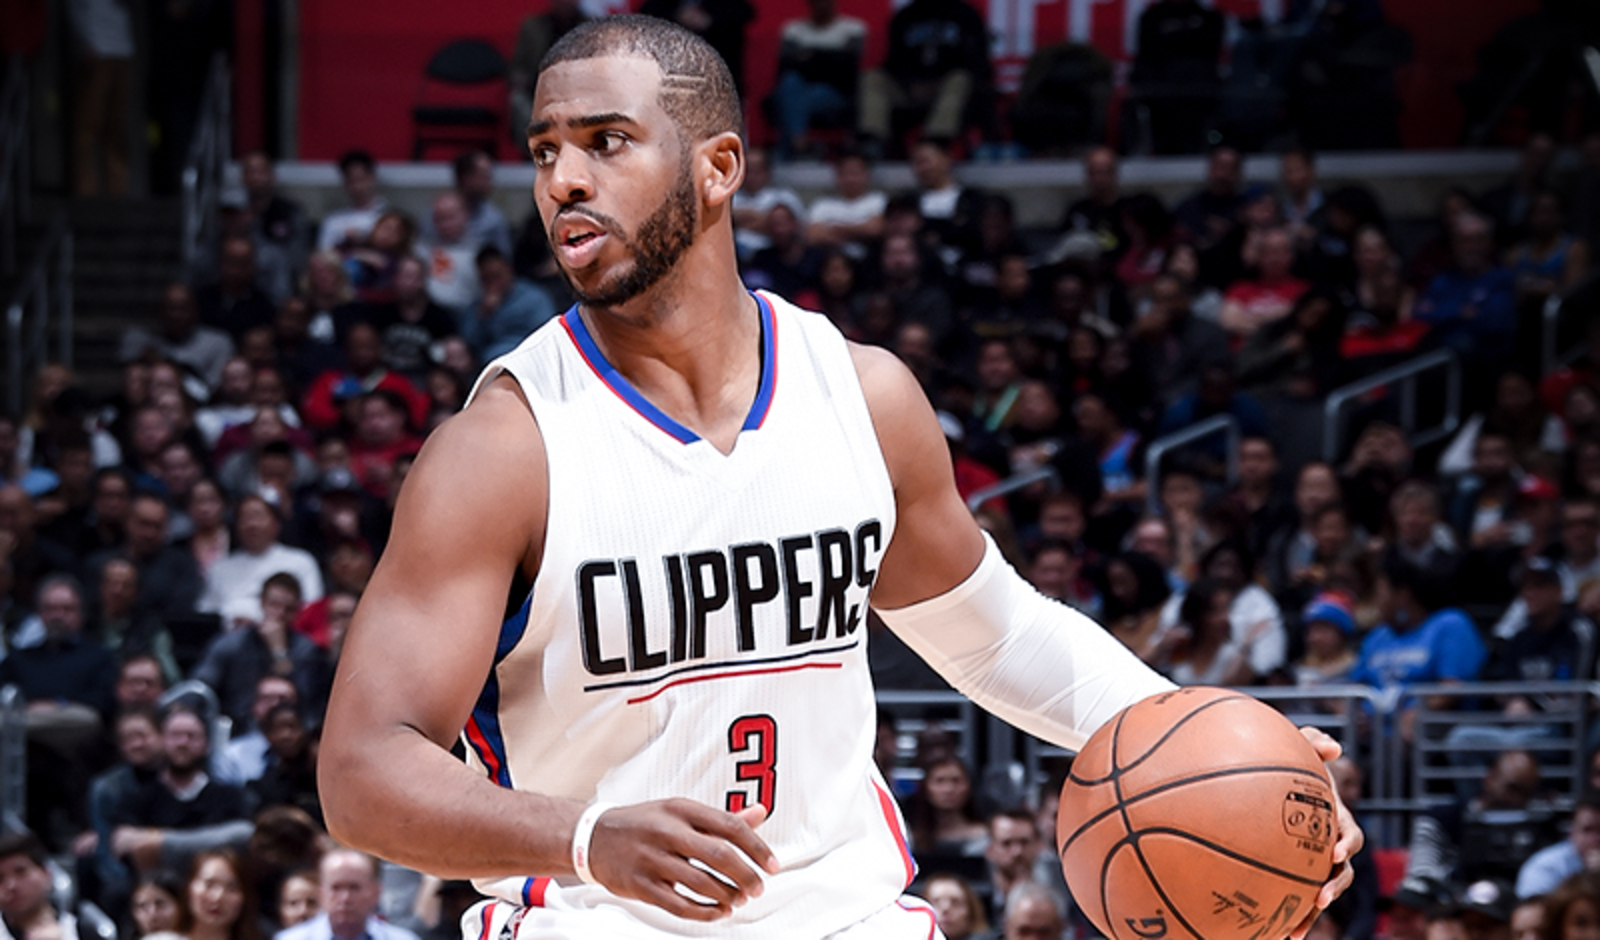 Chris Paul To Undergo Surgery For Torn Ligament In Left Thumb